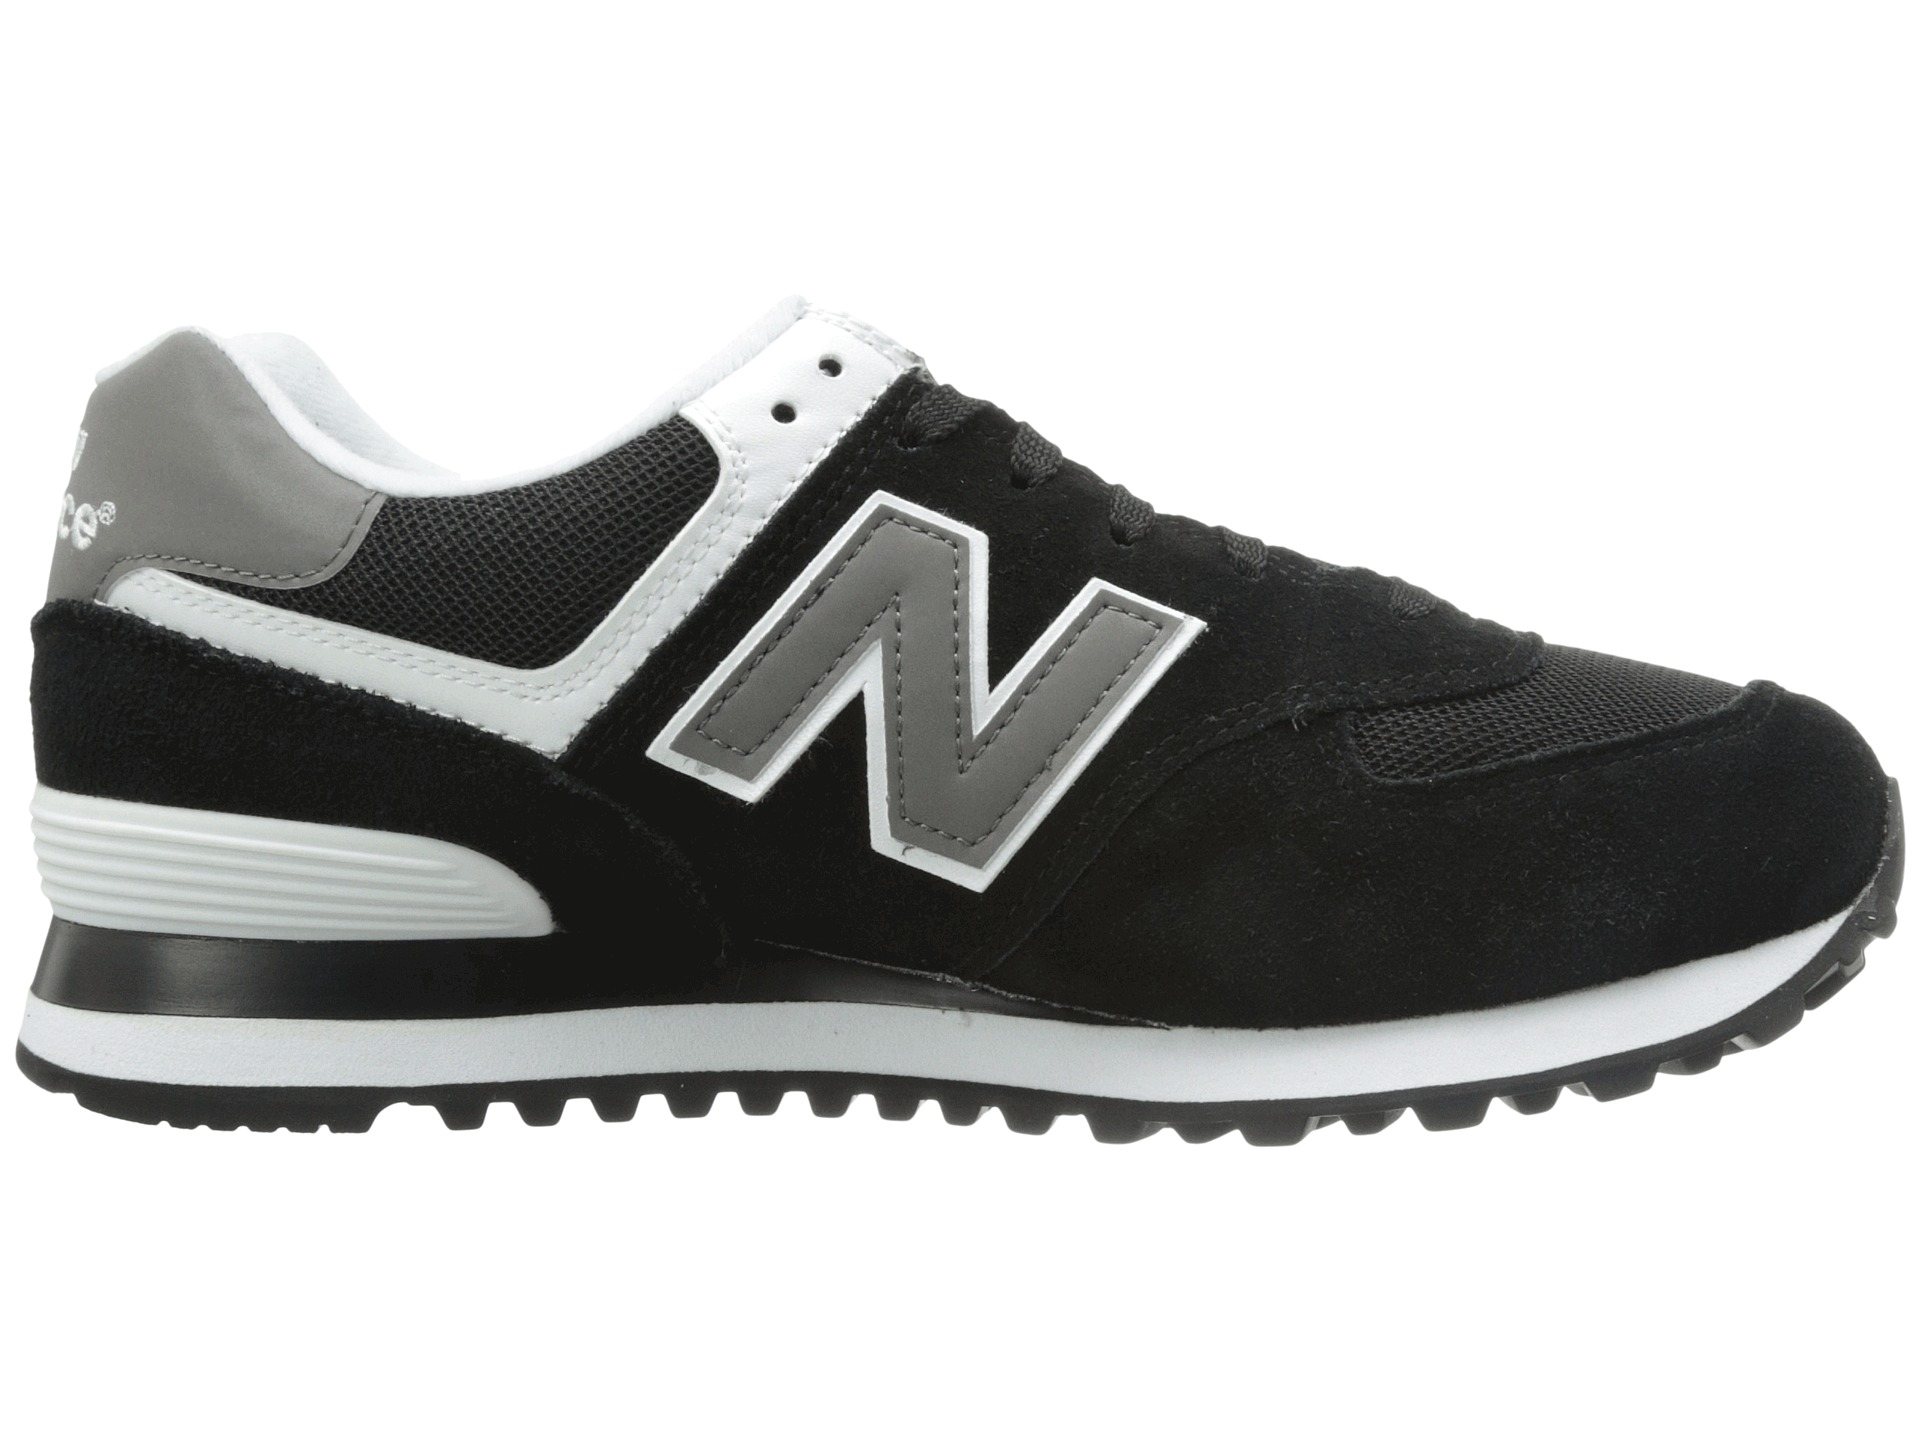 buy popular 547f7 6930a pmwfyaec Outlet new balance m574skw